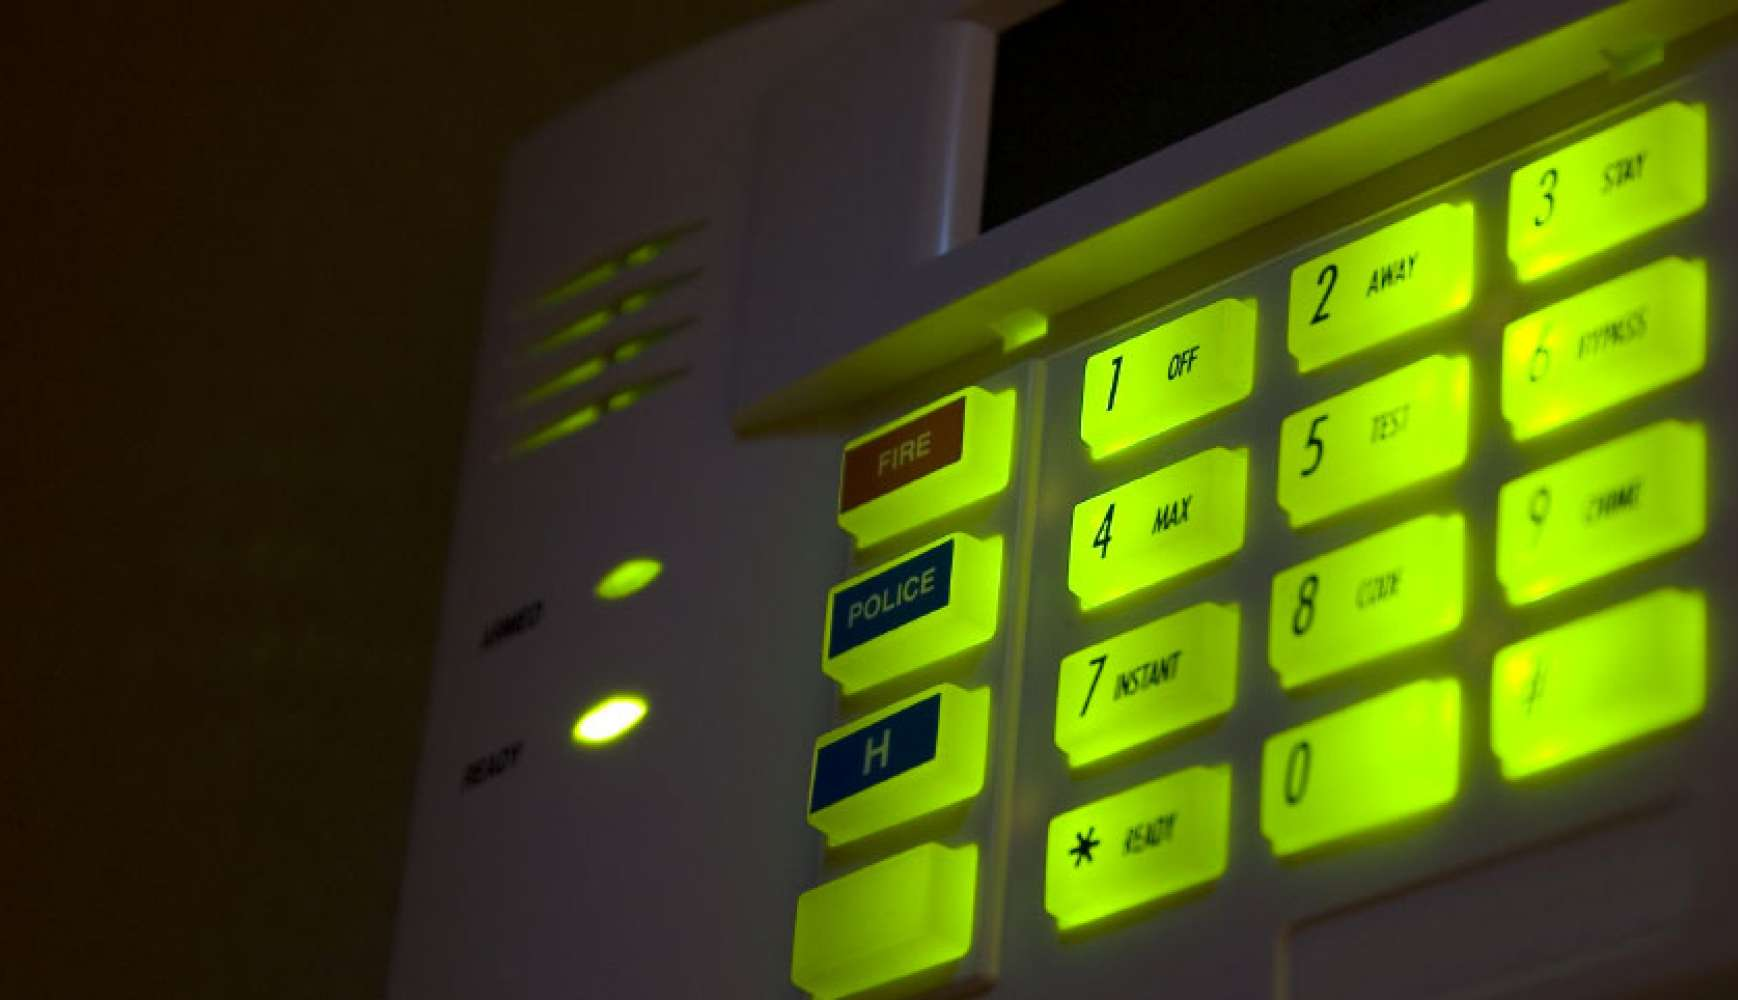 Security systems home security systems solutioingenieria Choice Image